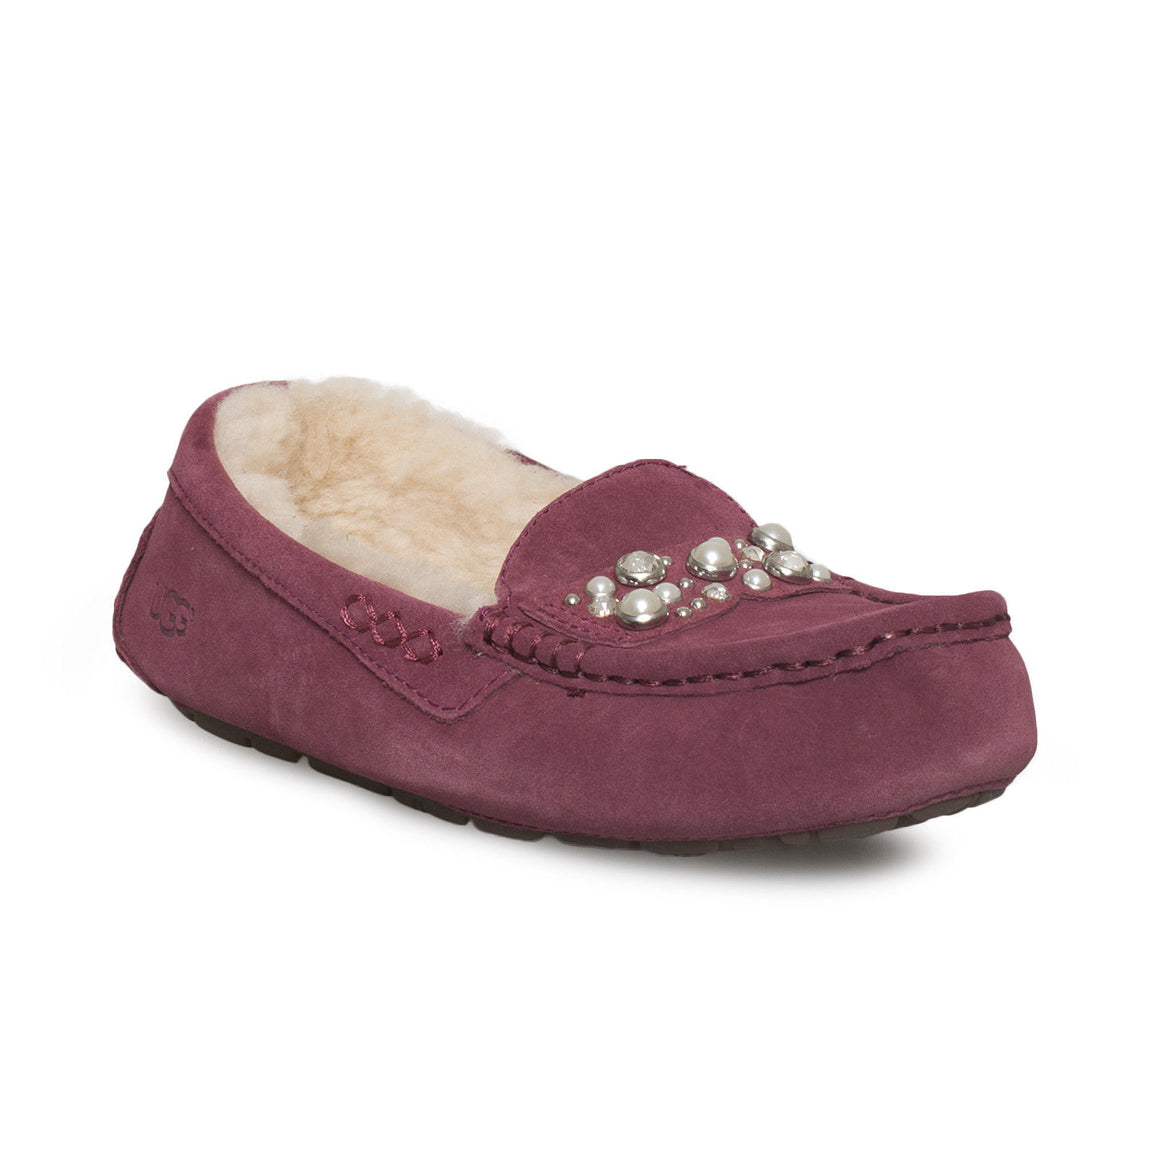 UGG Ansley Bow Brilliant Garnet Slippers